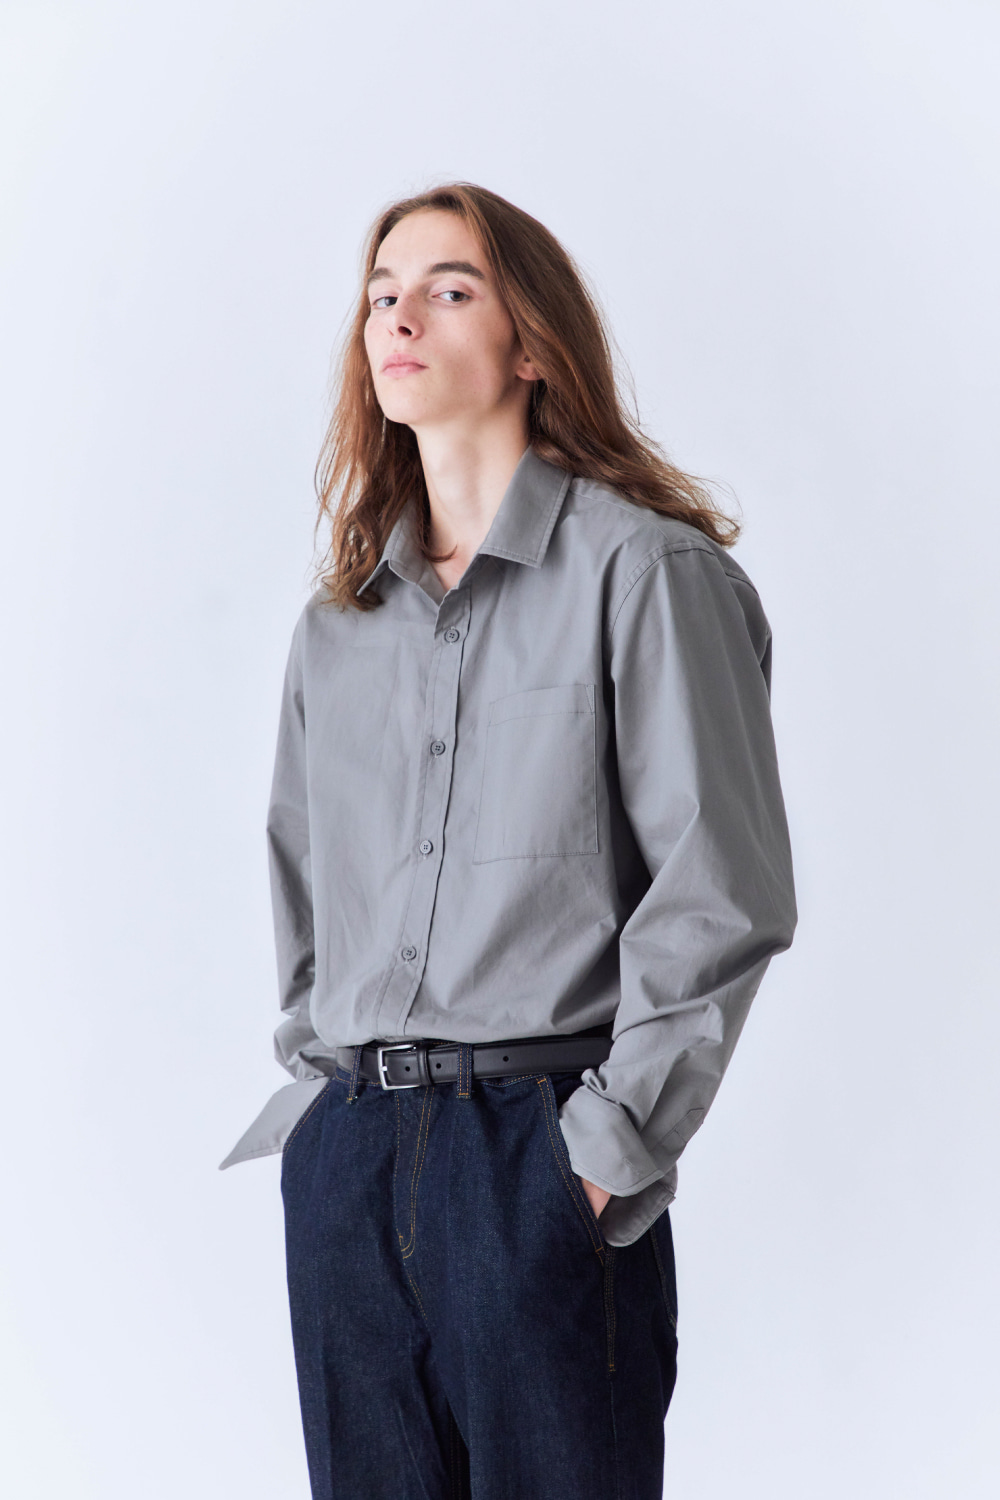 OURSCOPE아워스코프 Colorful Basic Shirts (Gray)